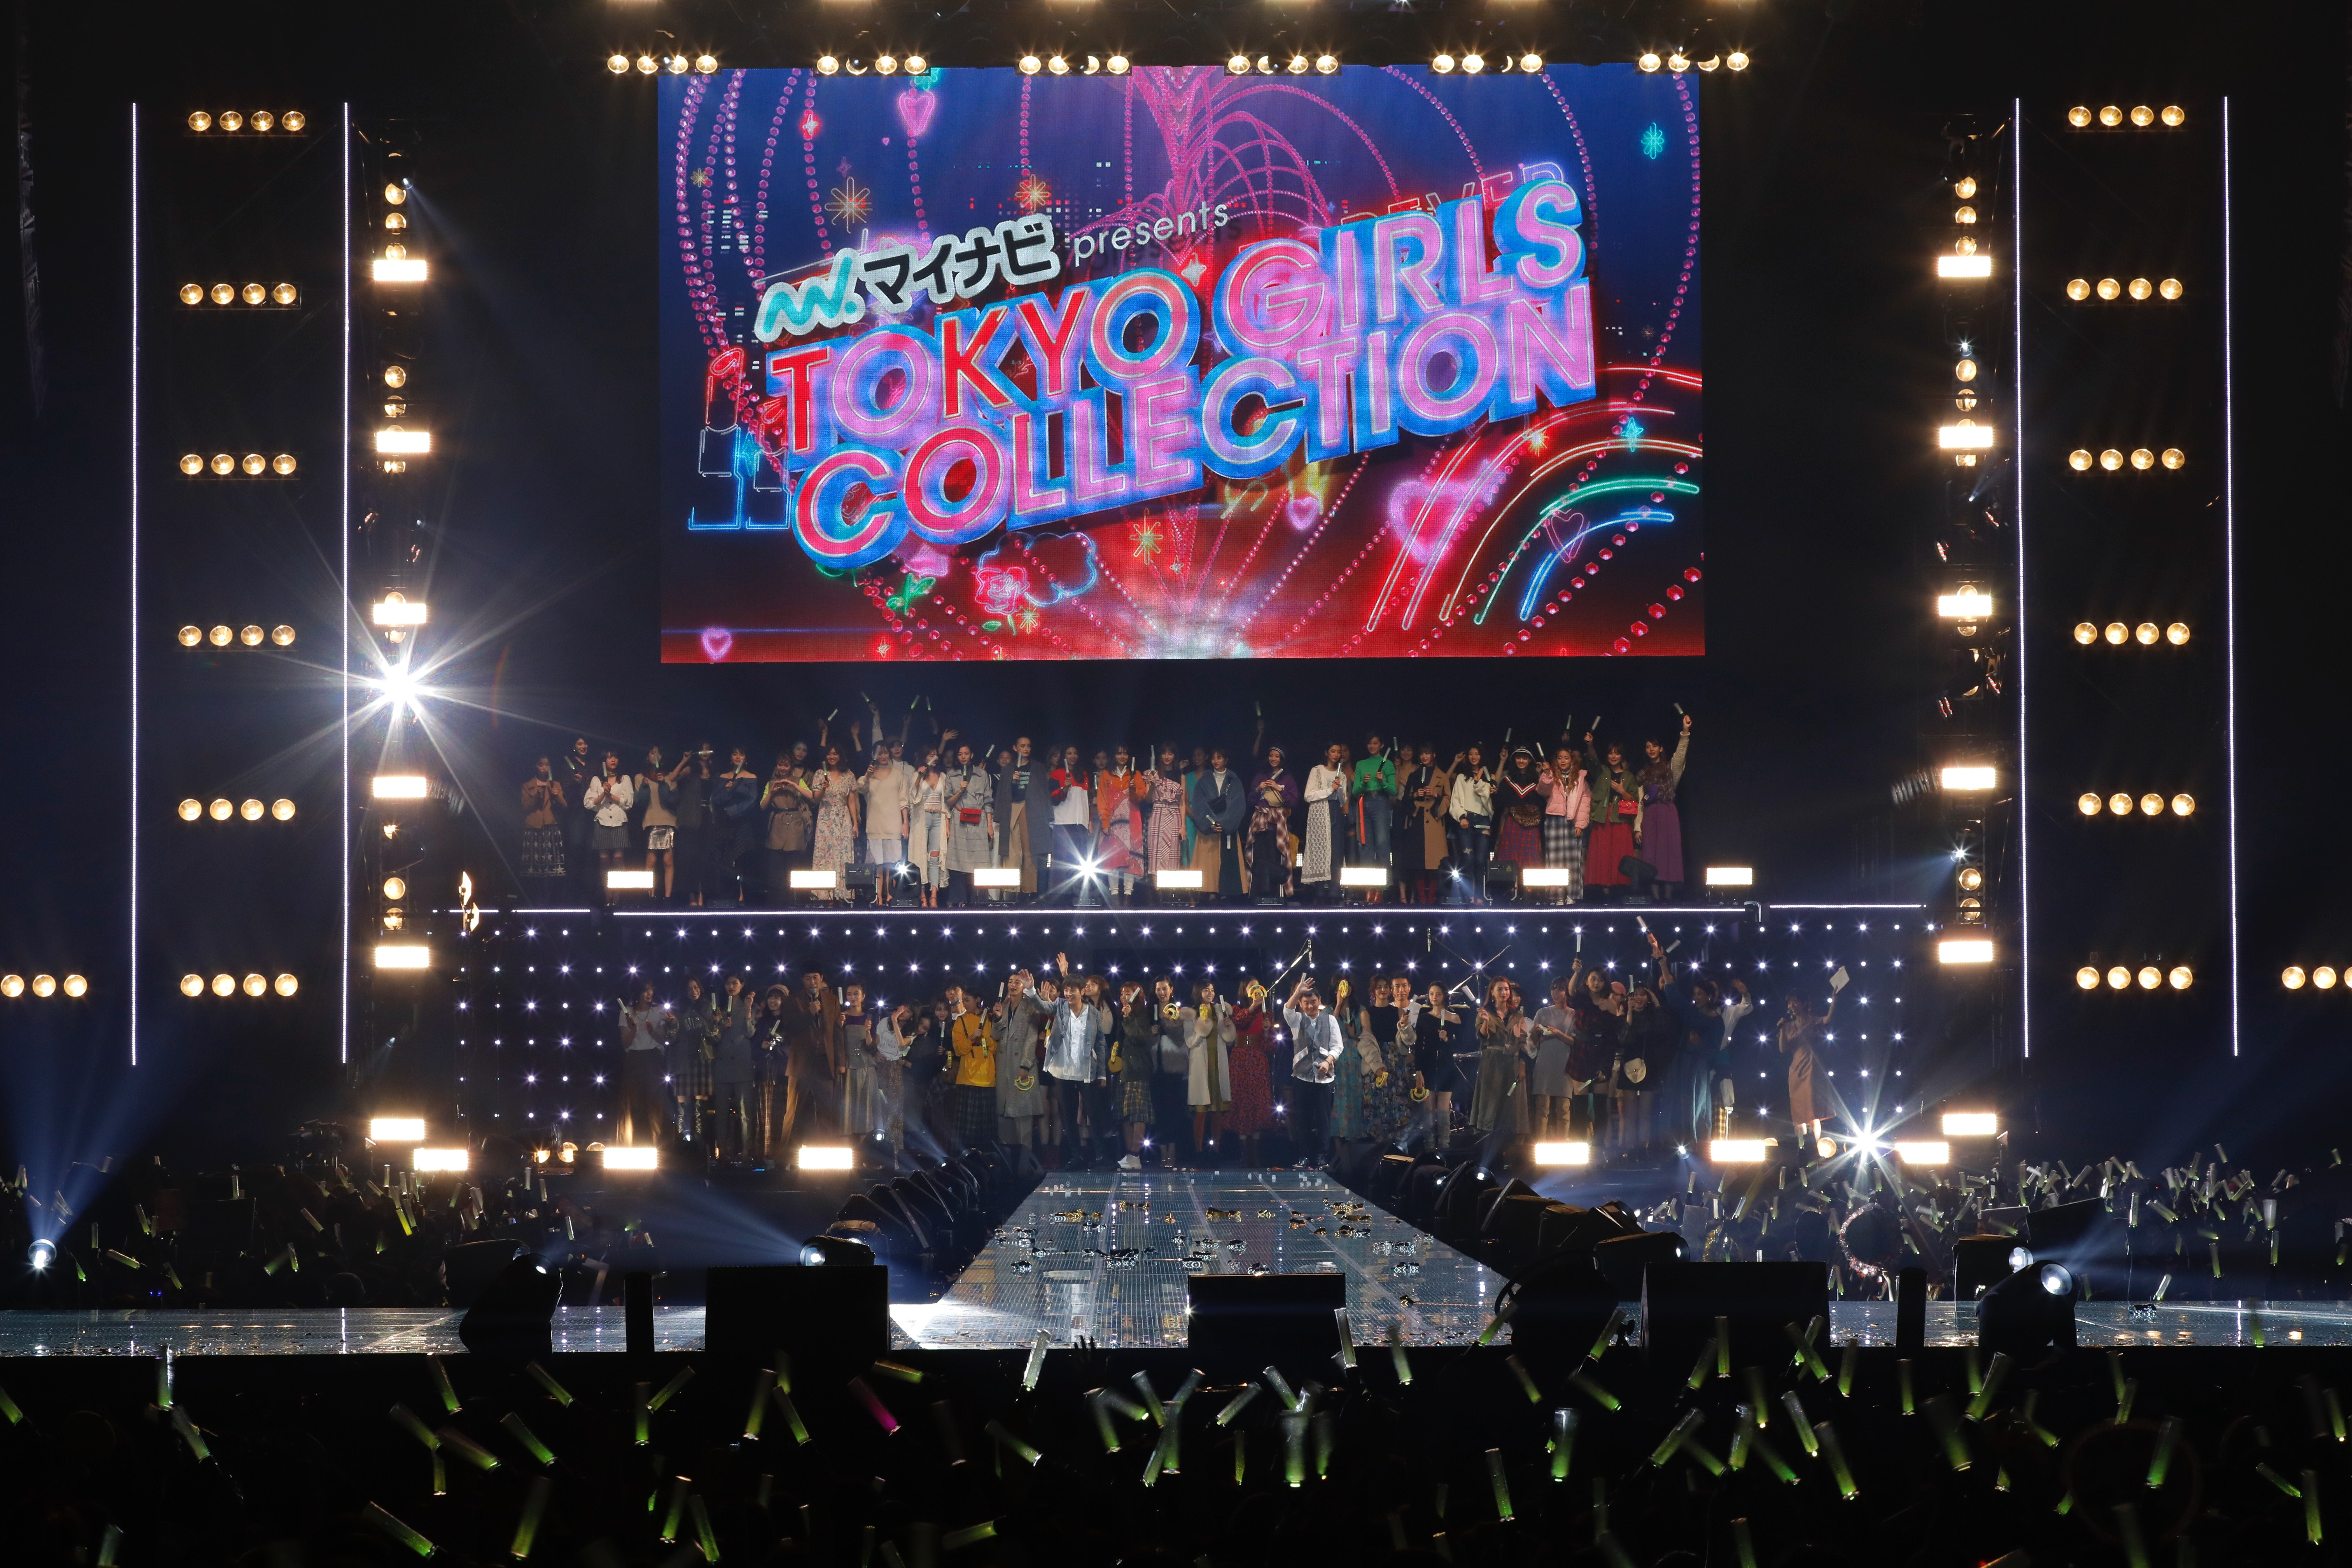 Tokyo Girls Collection festival | Source: Courtesy